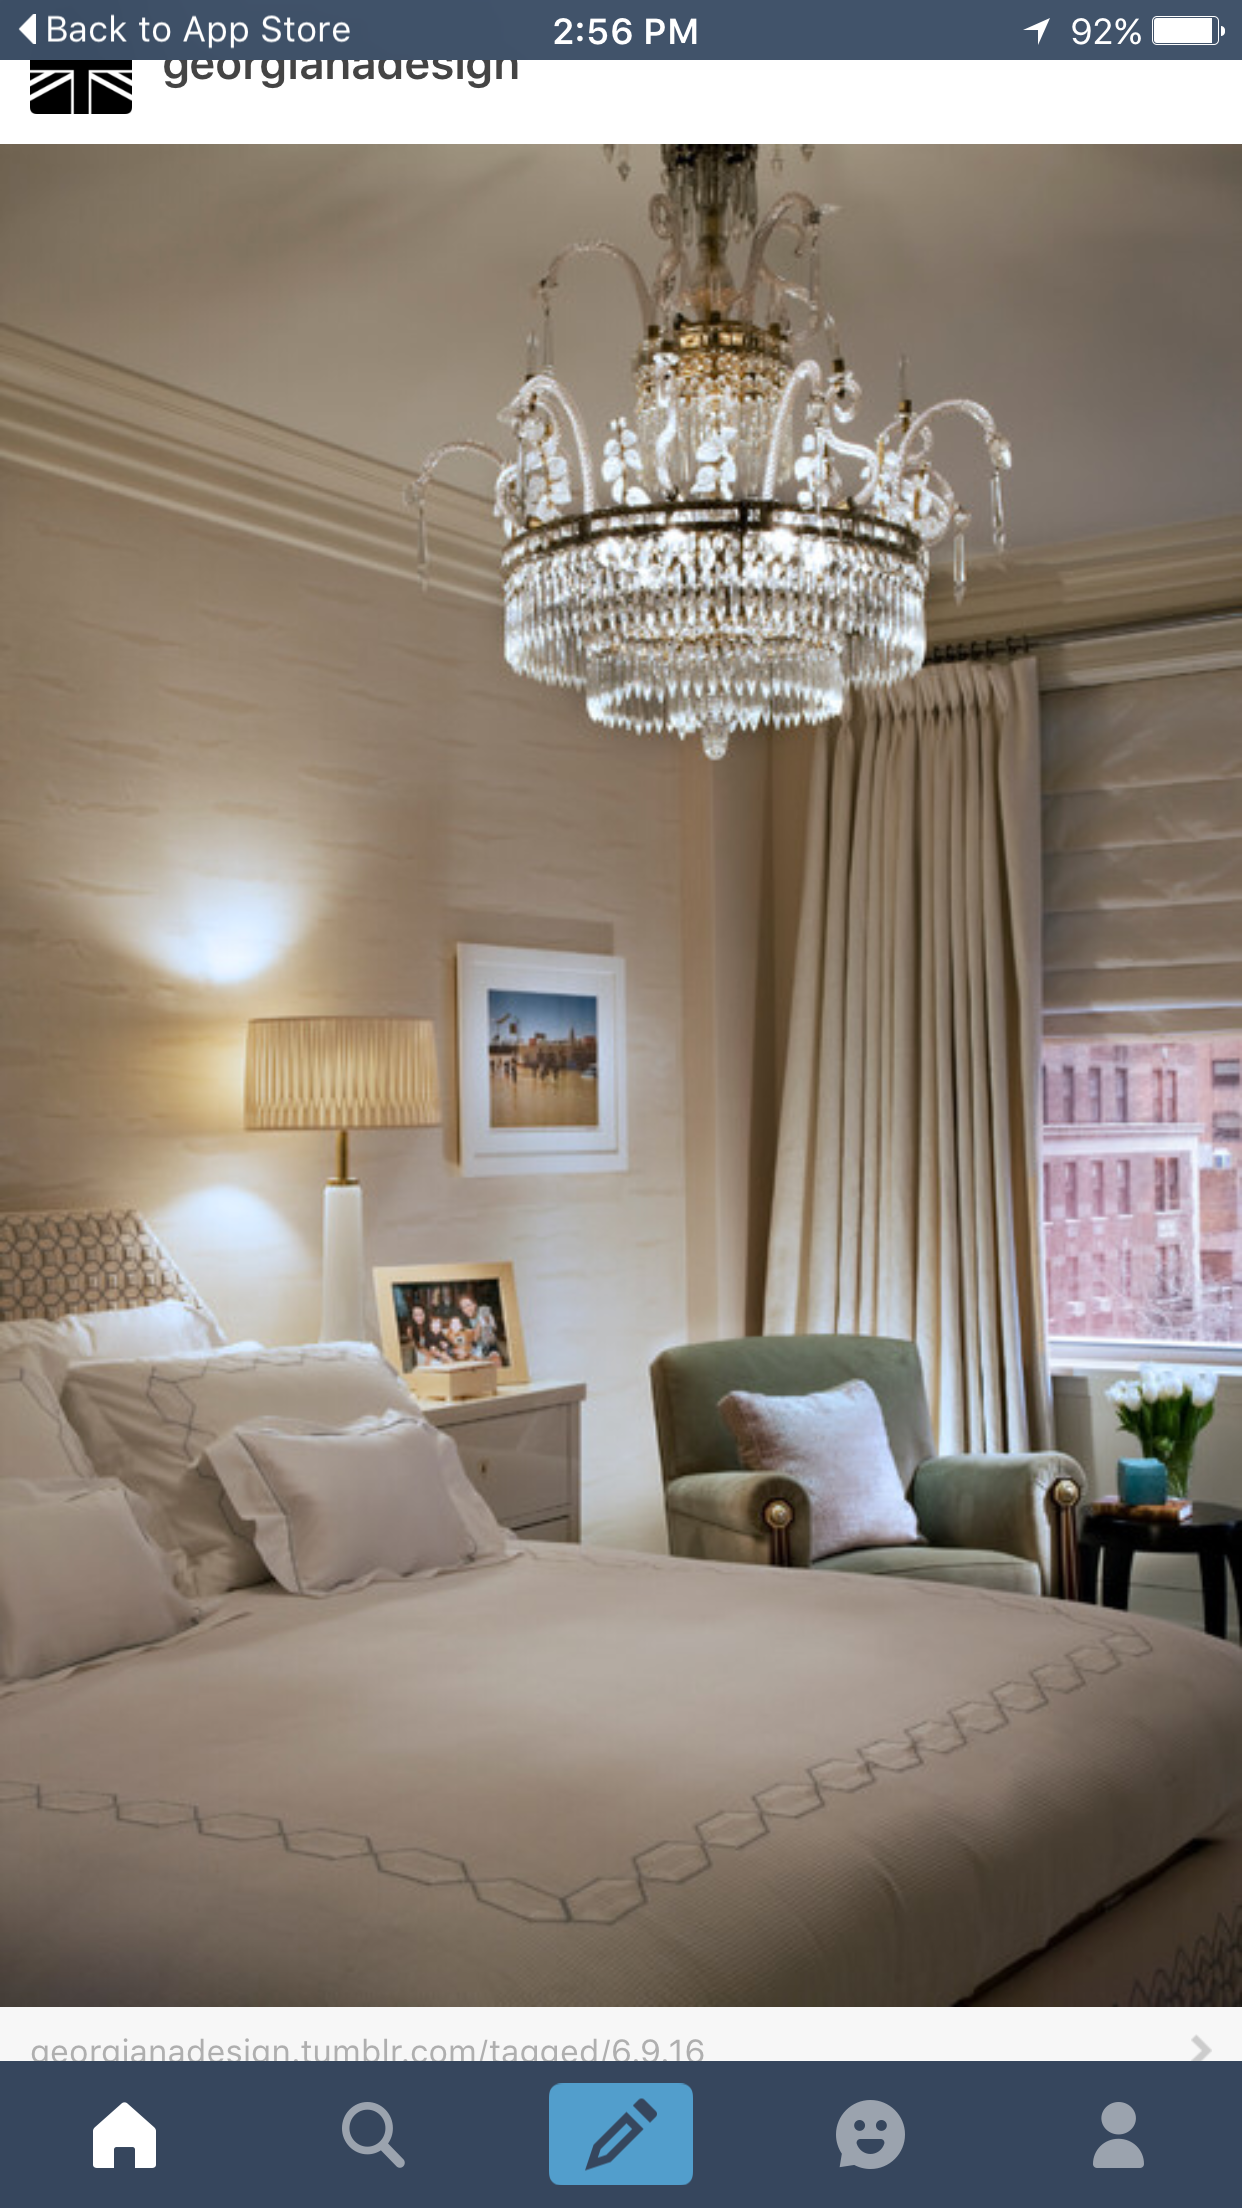 A Chandelier Over The Bed Adds